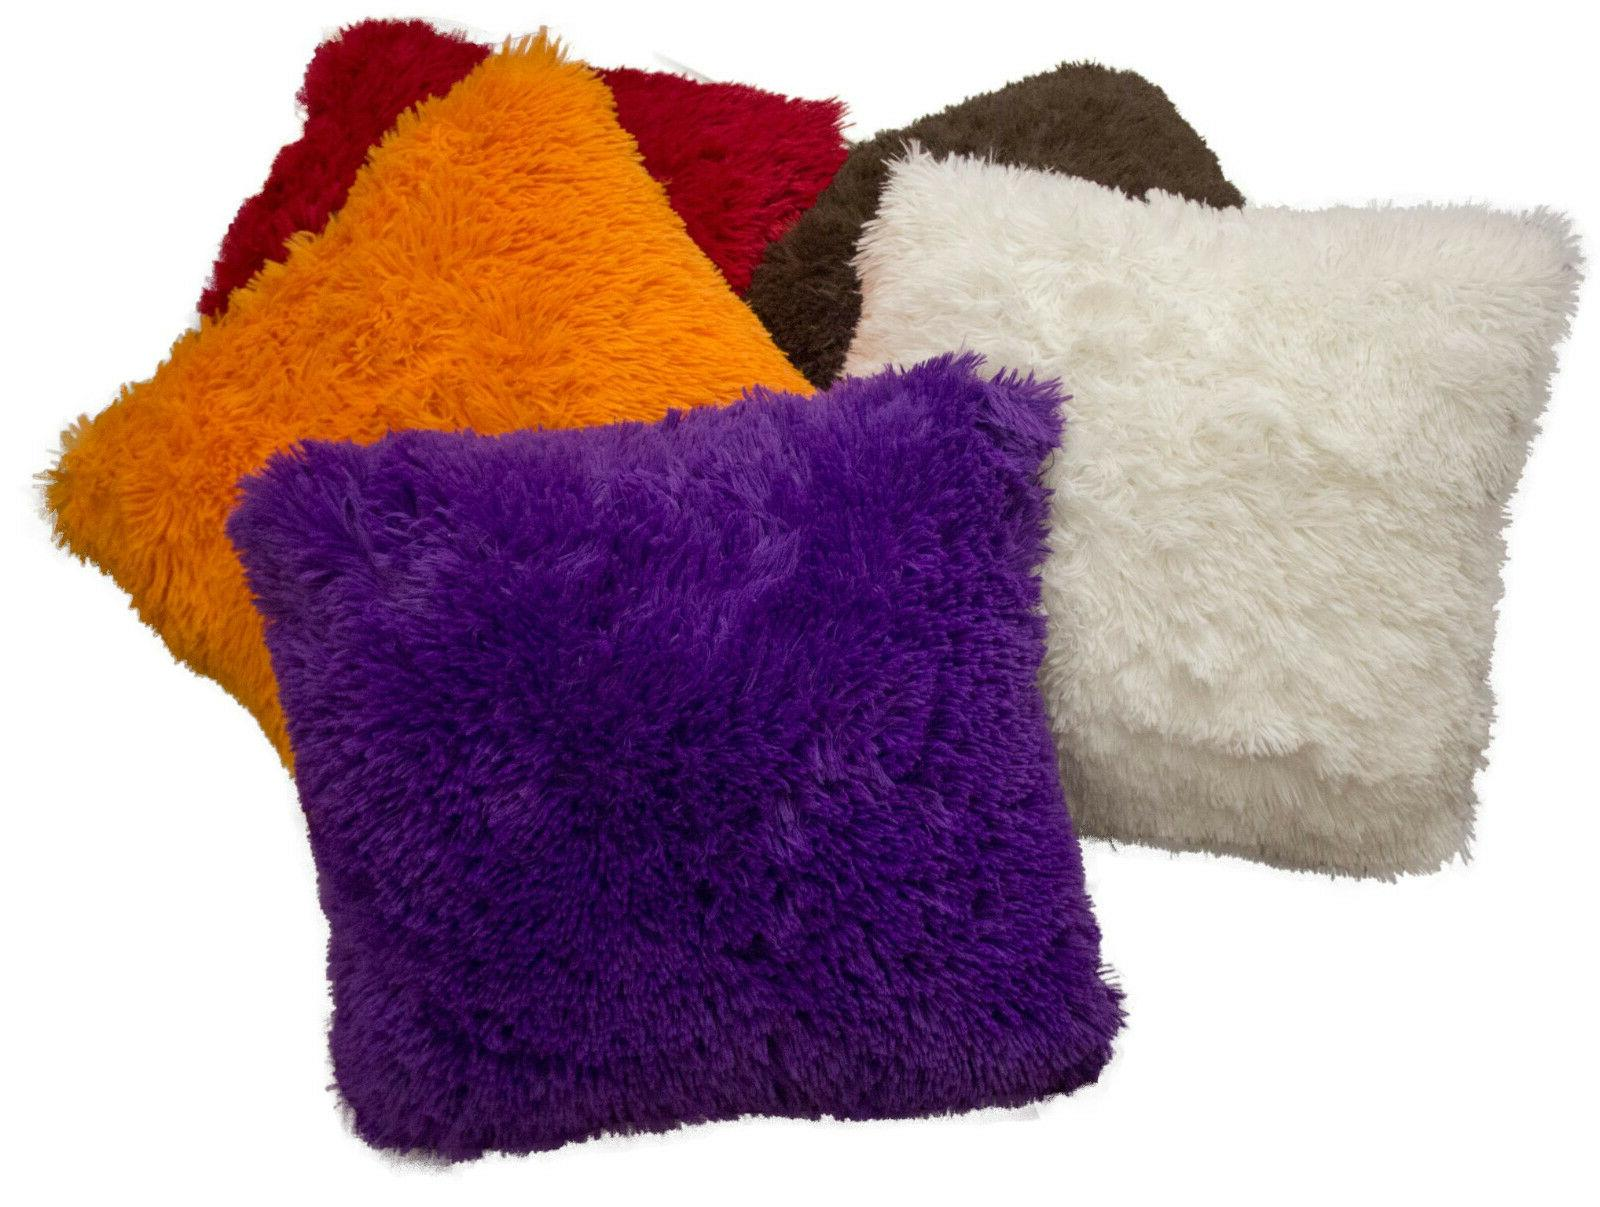 Shaggy Fur Pillows, Many